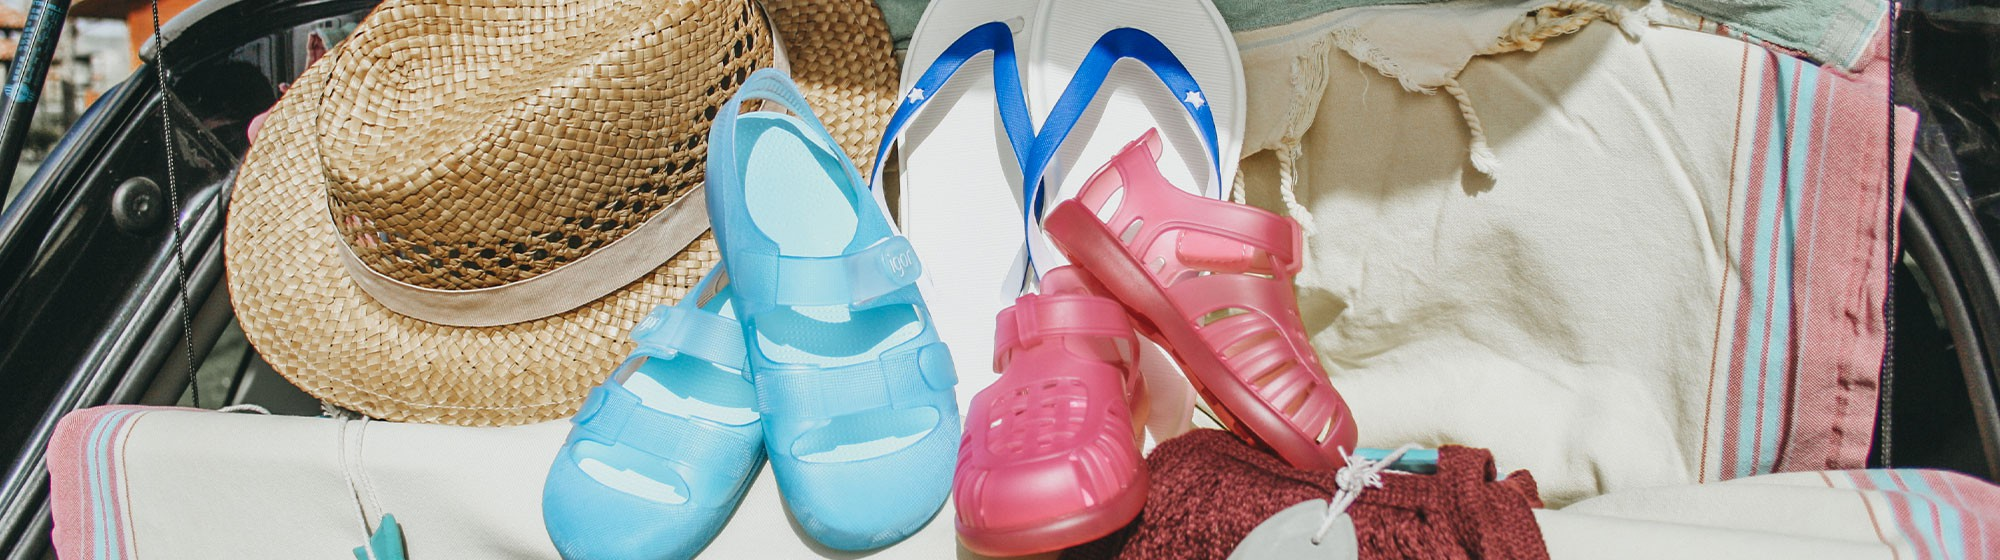 Jelly Sandals and Beachwear